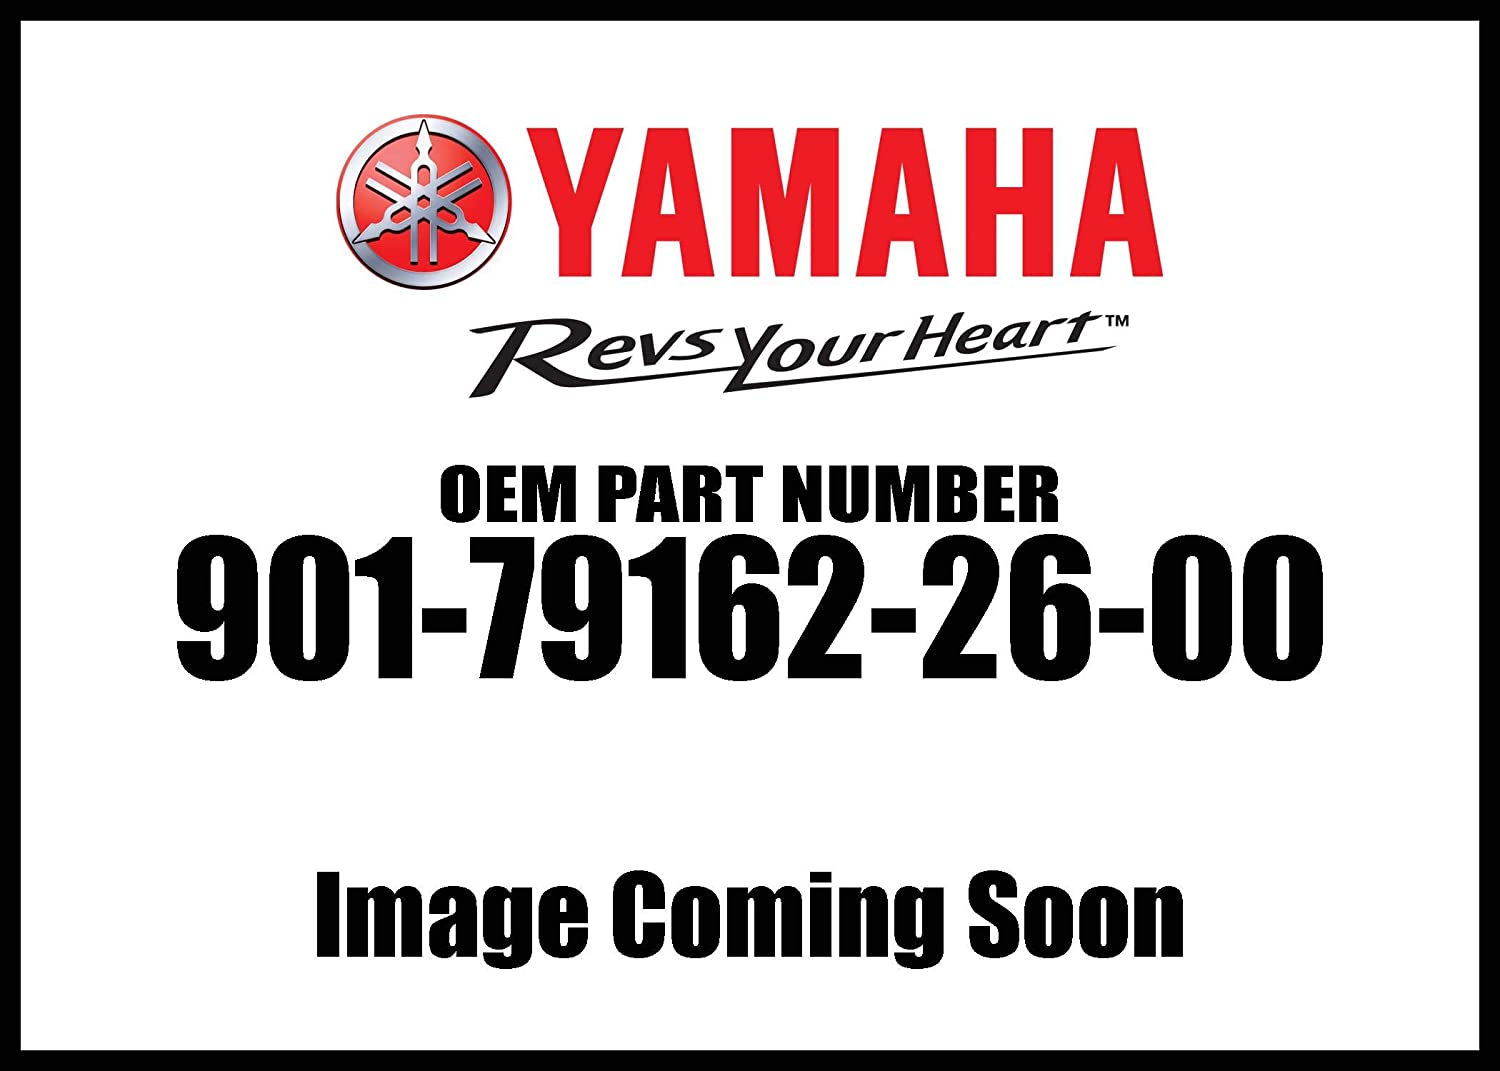 Yamaha 90179-16226-00 NUT, SPEC'L SHAPE; 901791622600 SPEC'L SHAPE; 901791622600